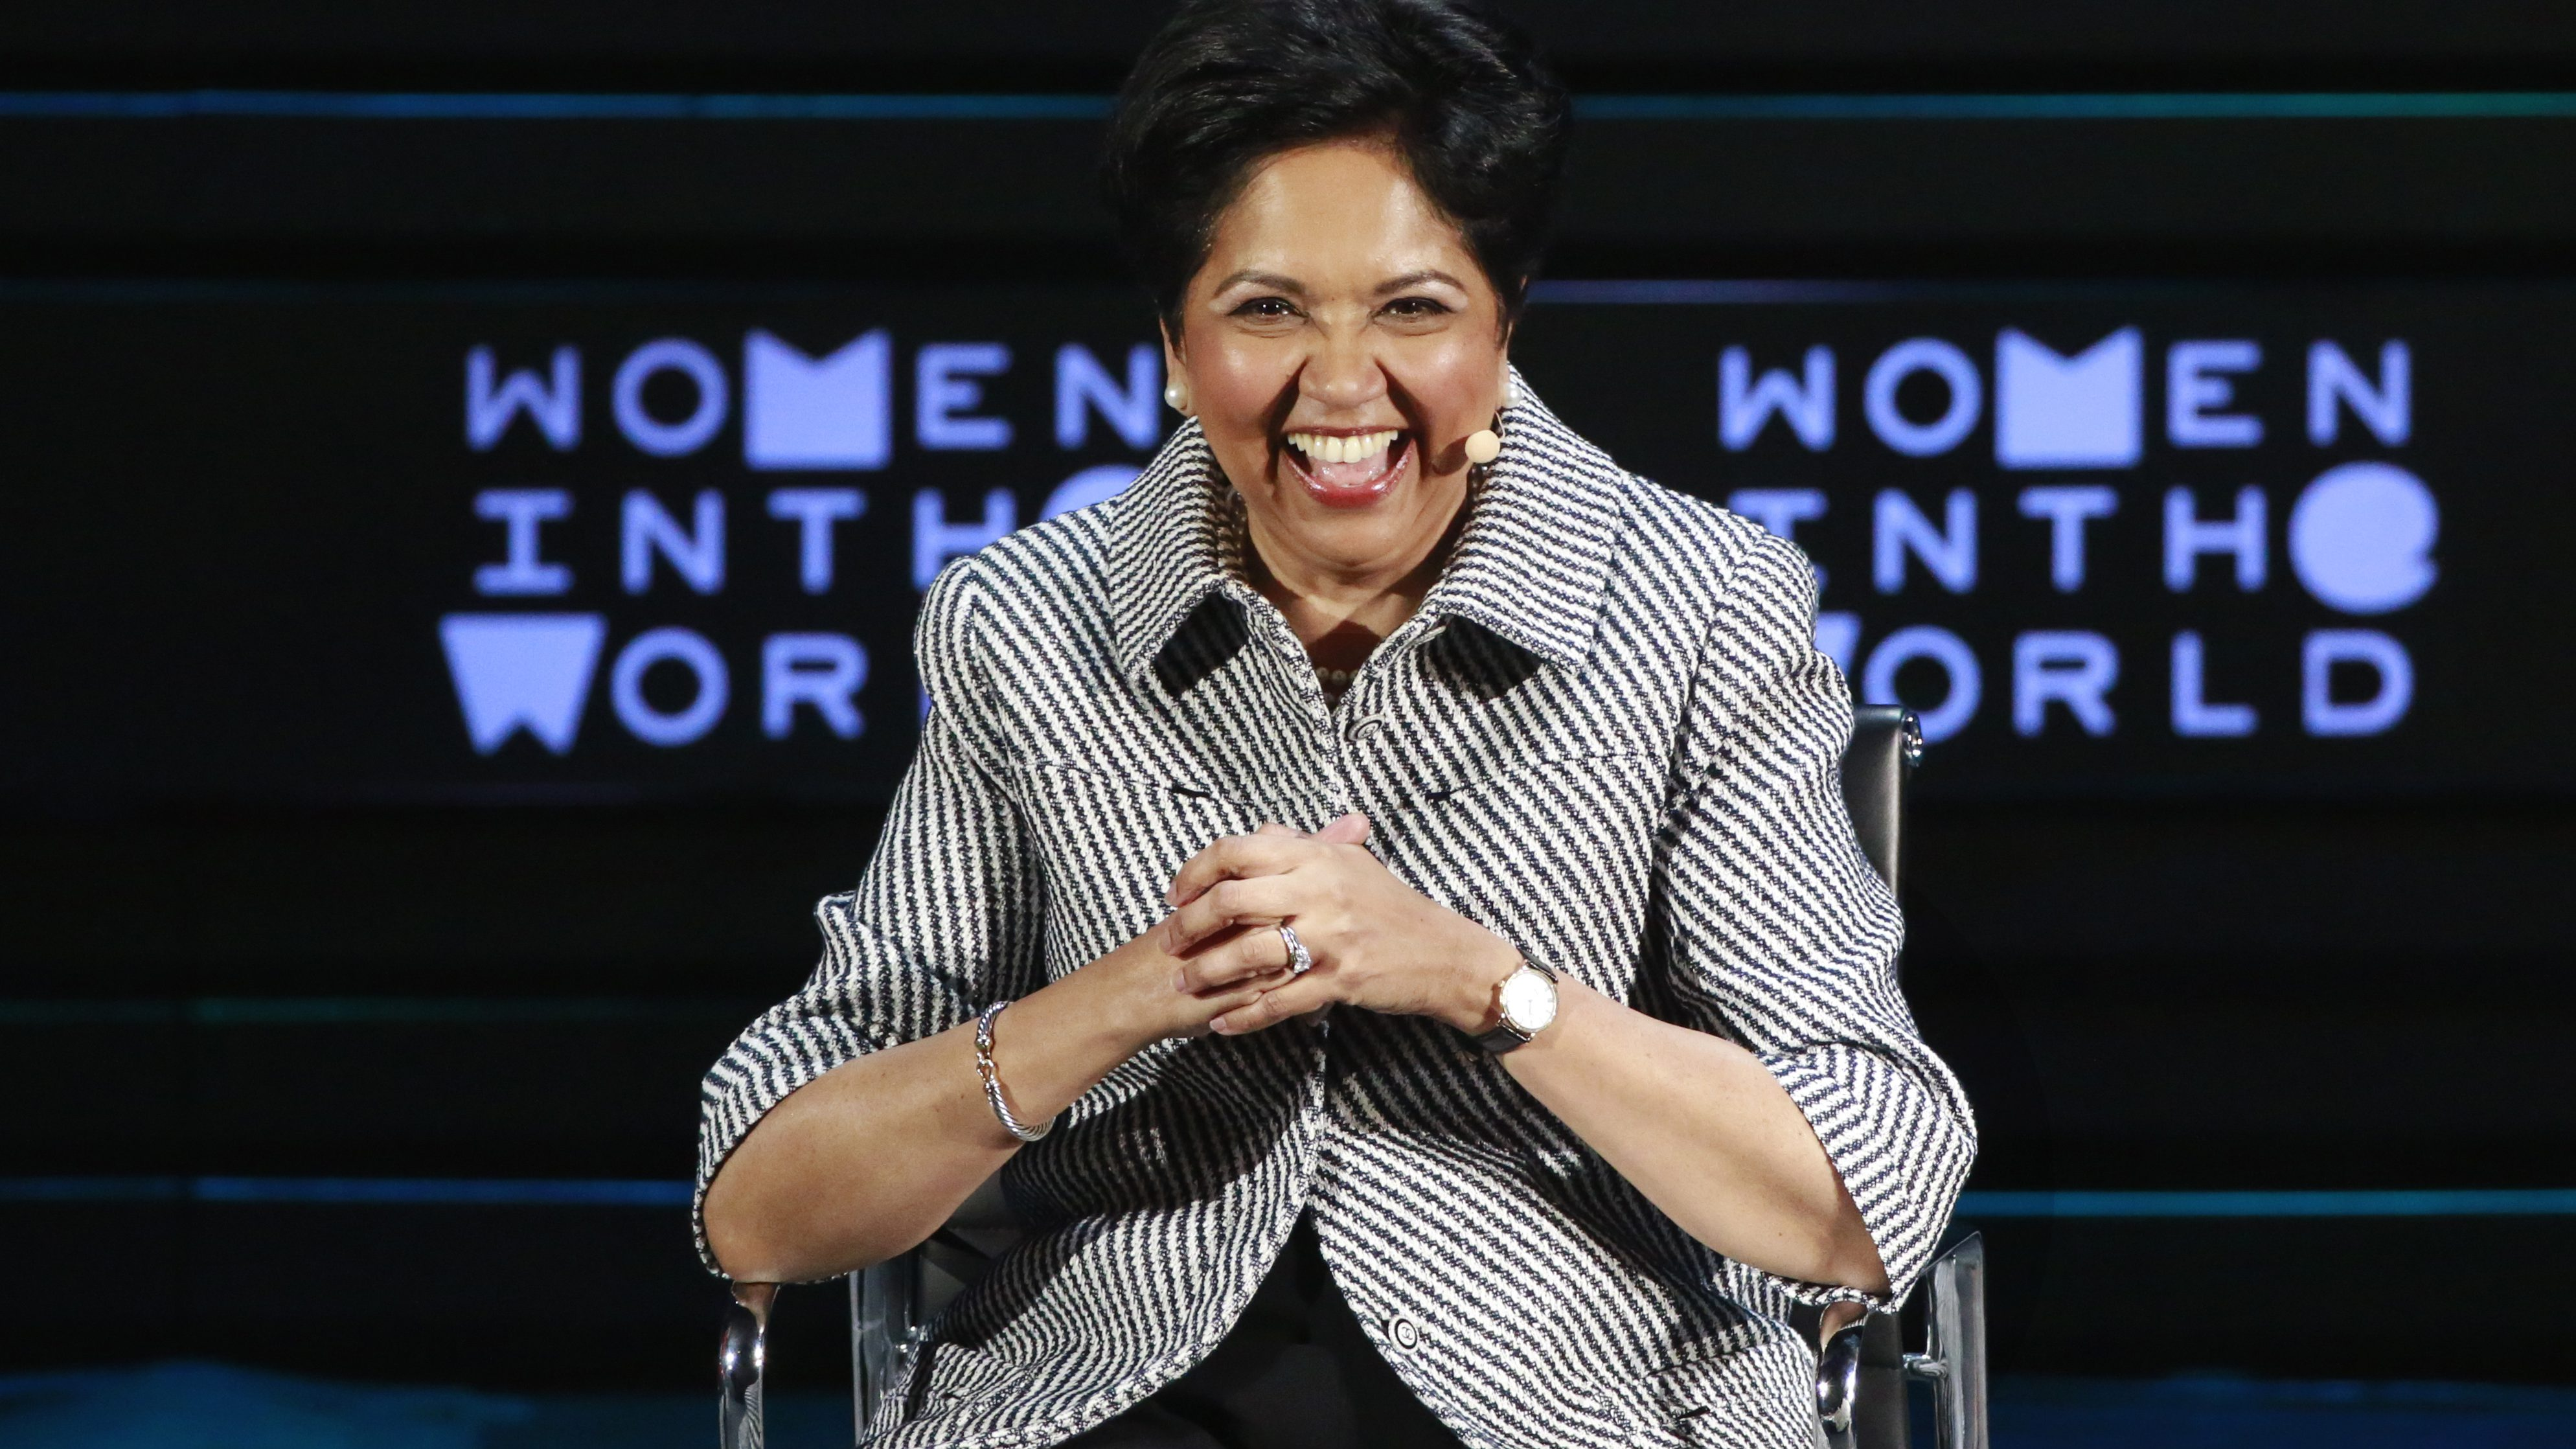 Indra Nooyi, CEO of PepsiCo, takes part in a panel during the Women In The World Summit in the Manhattan borough of New York April 8, 2016. REUTERS/Lucas Jackson  - RTSE7AV